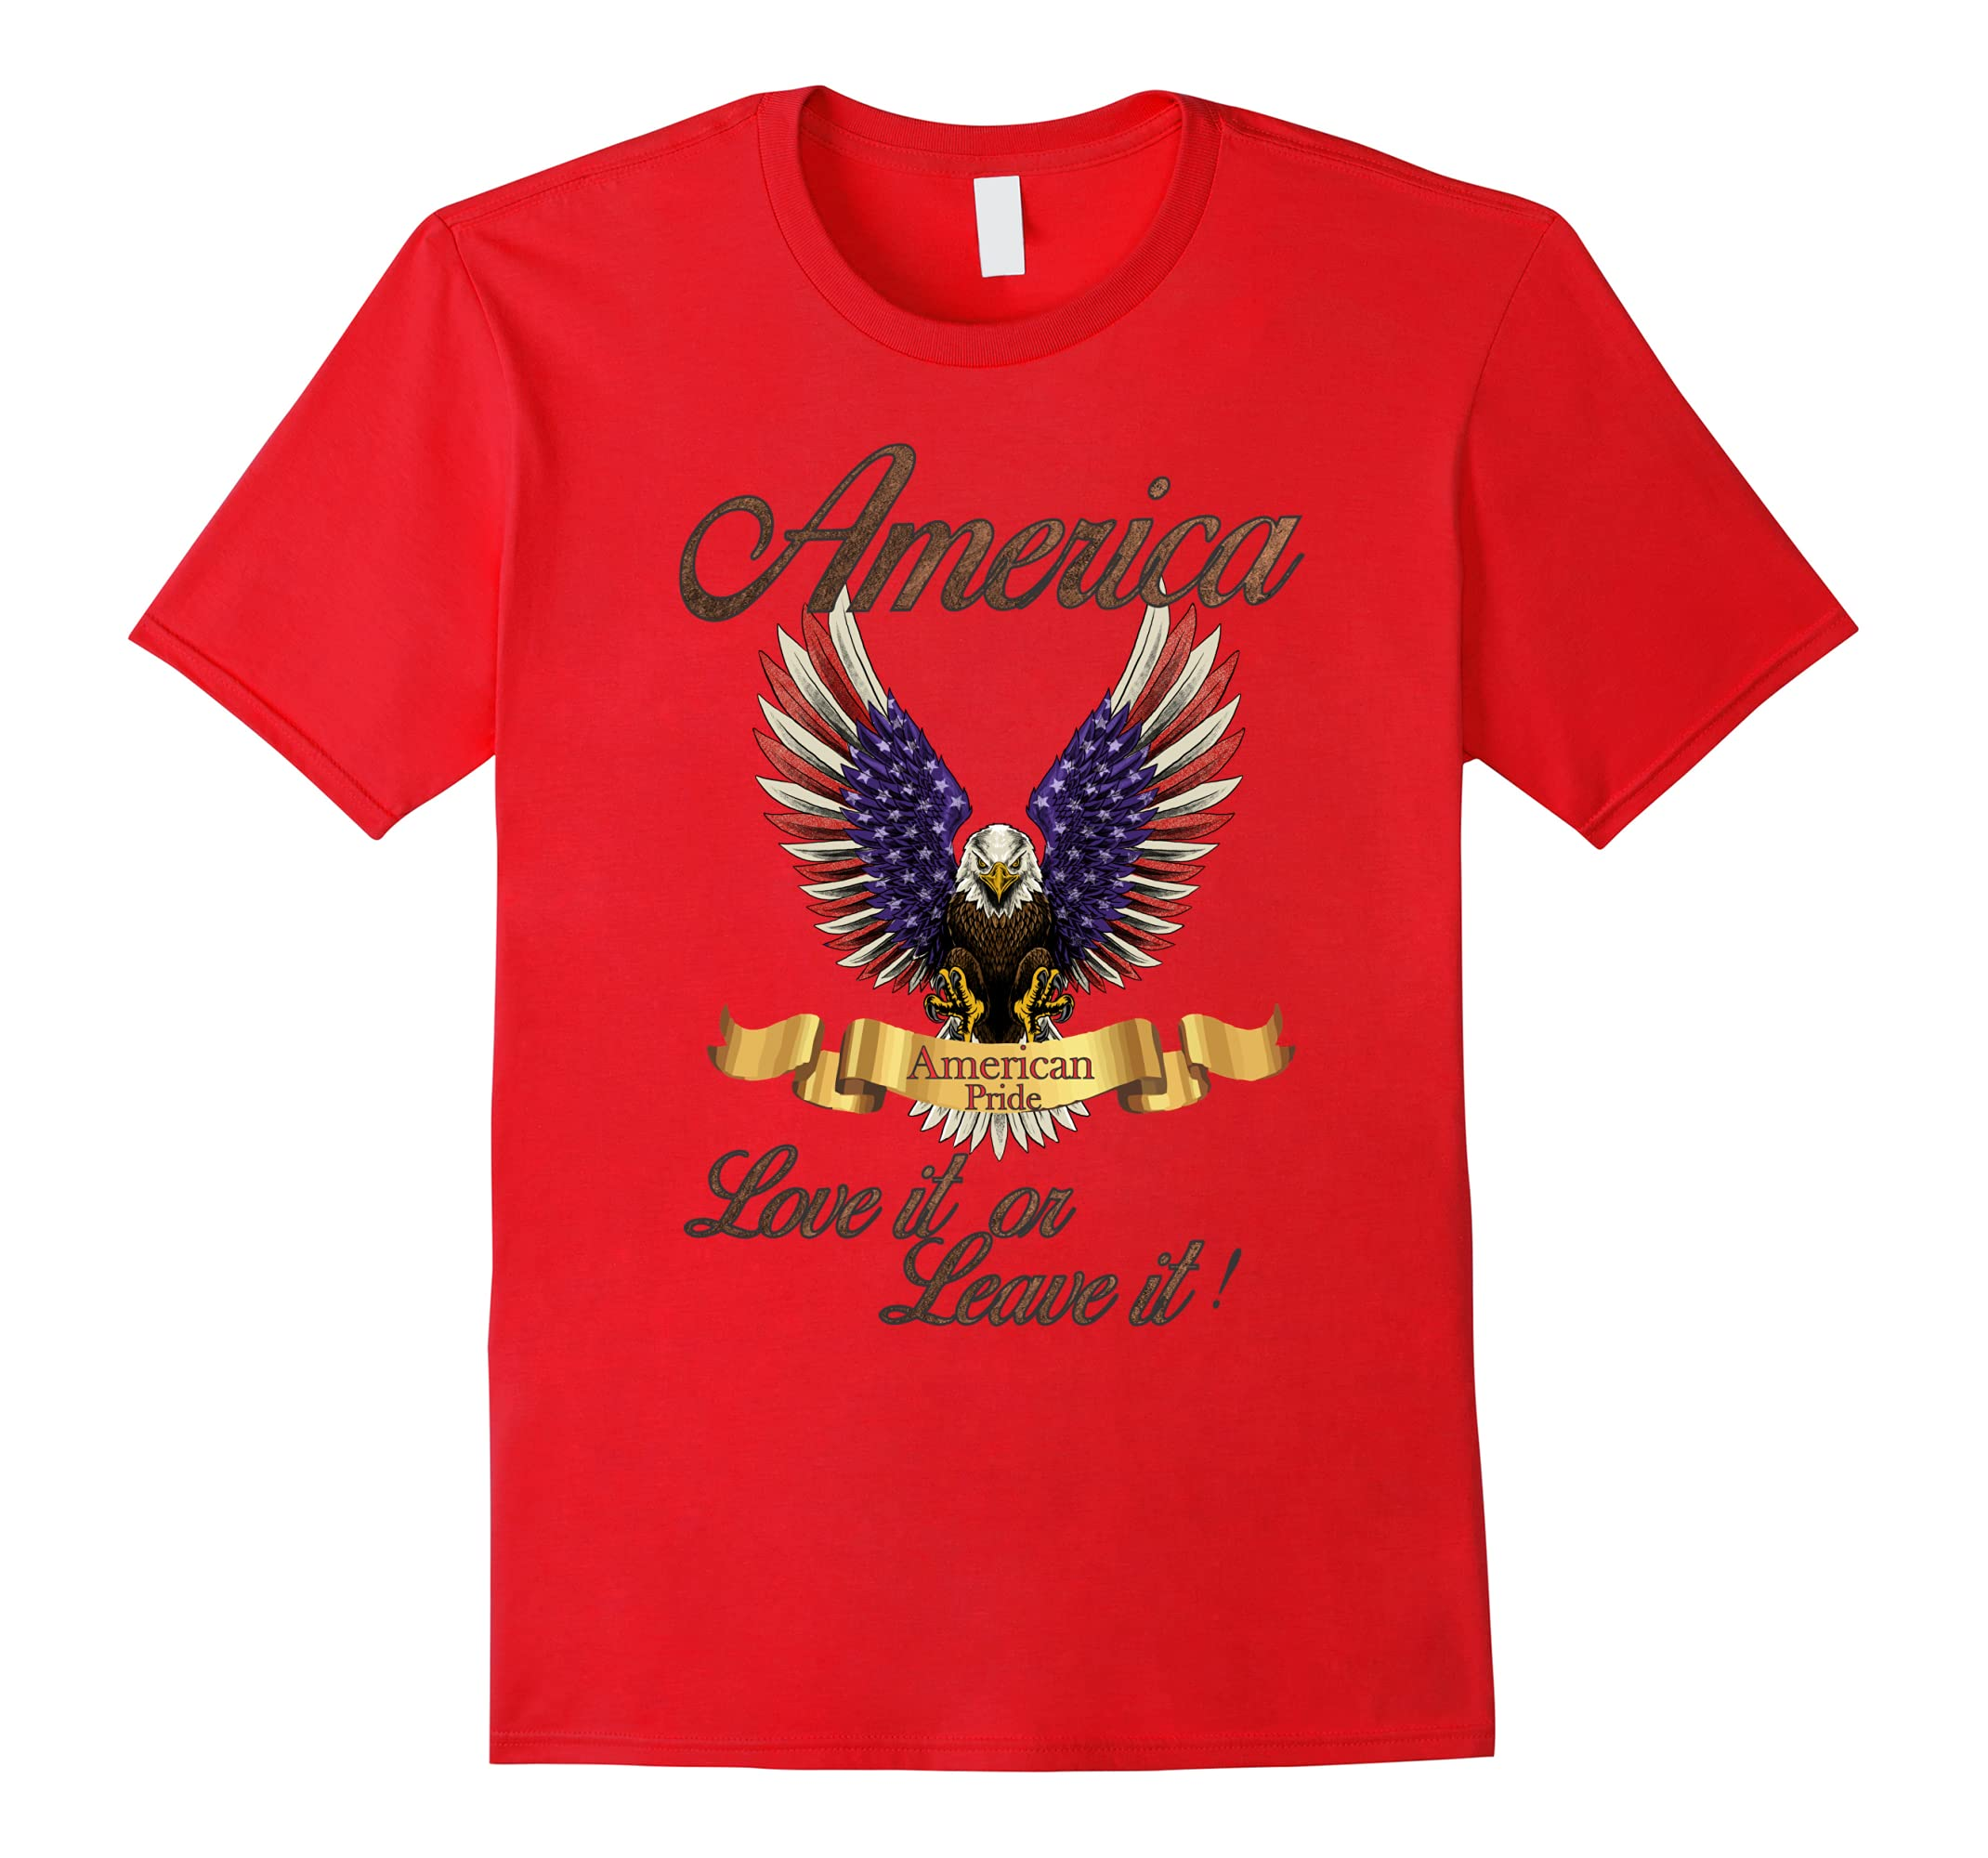 America love it or leave it T shirt-ah my shirt one gift